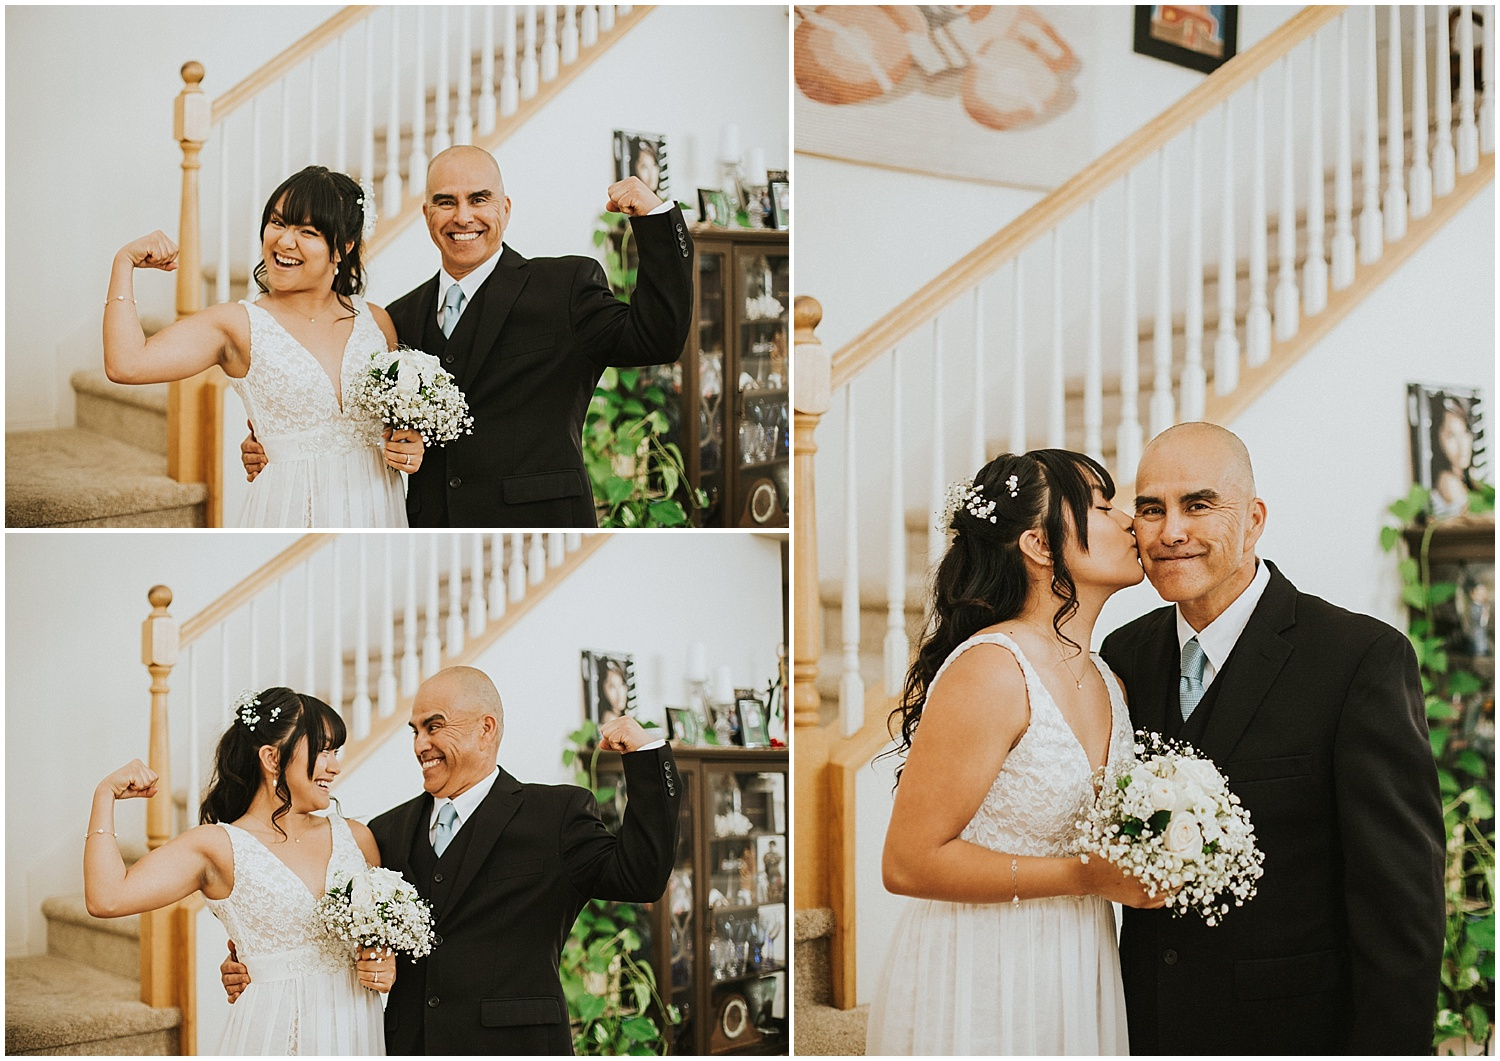 Bride with Dad before walking down the aisle at this Backyard Albuquerque Elopement   Downtown Contemporary Art Studio   Albuquerque, New Mexico   Jasper K Photography